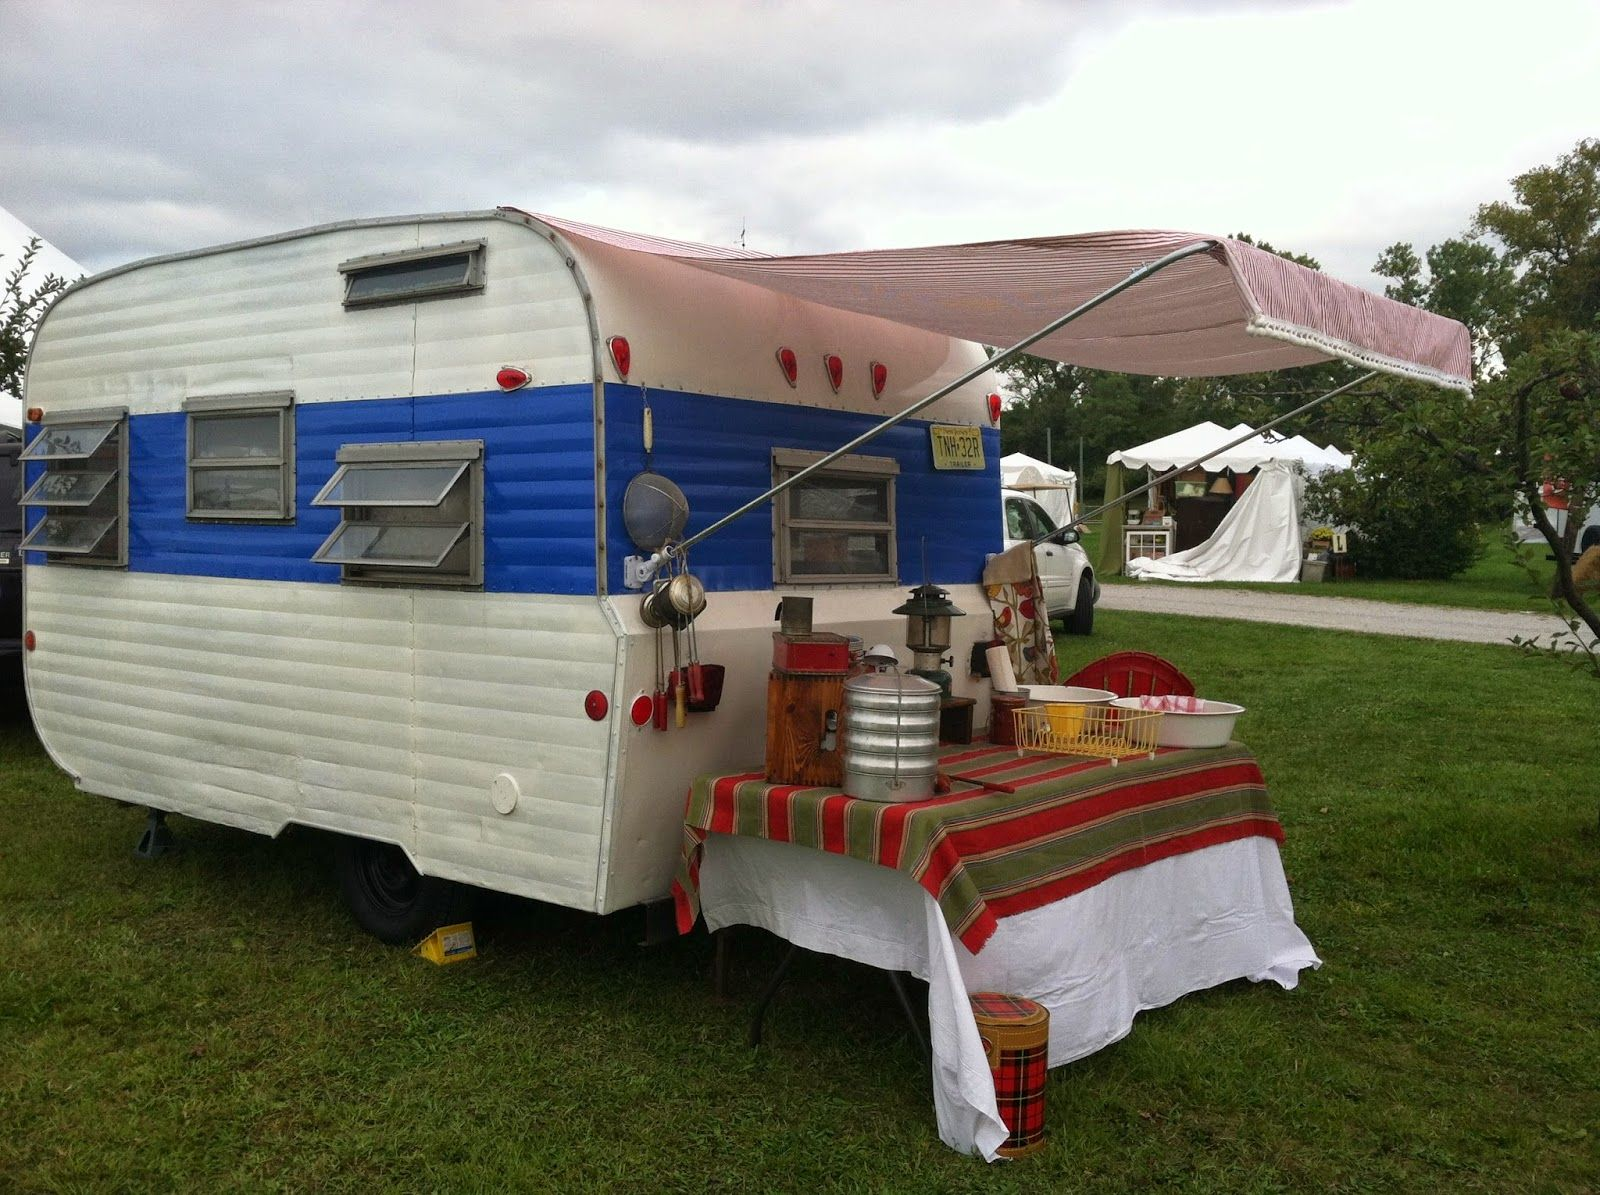 Attached Awning Tutorial Girl Camper Trailer Awning Camper Awnings Camper